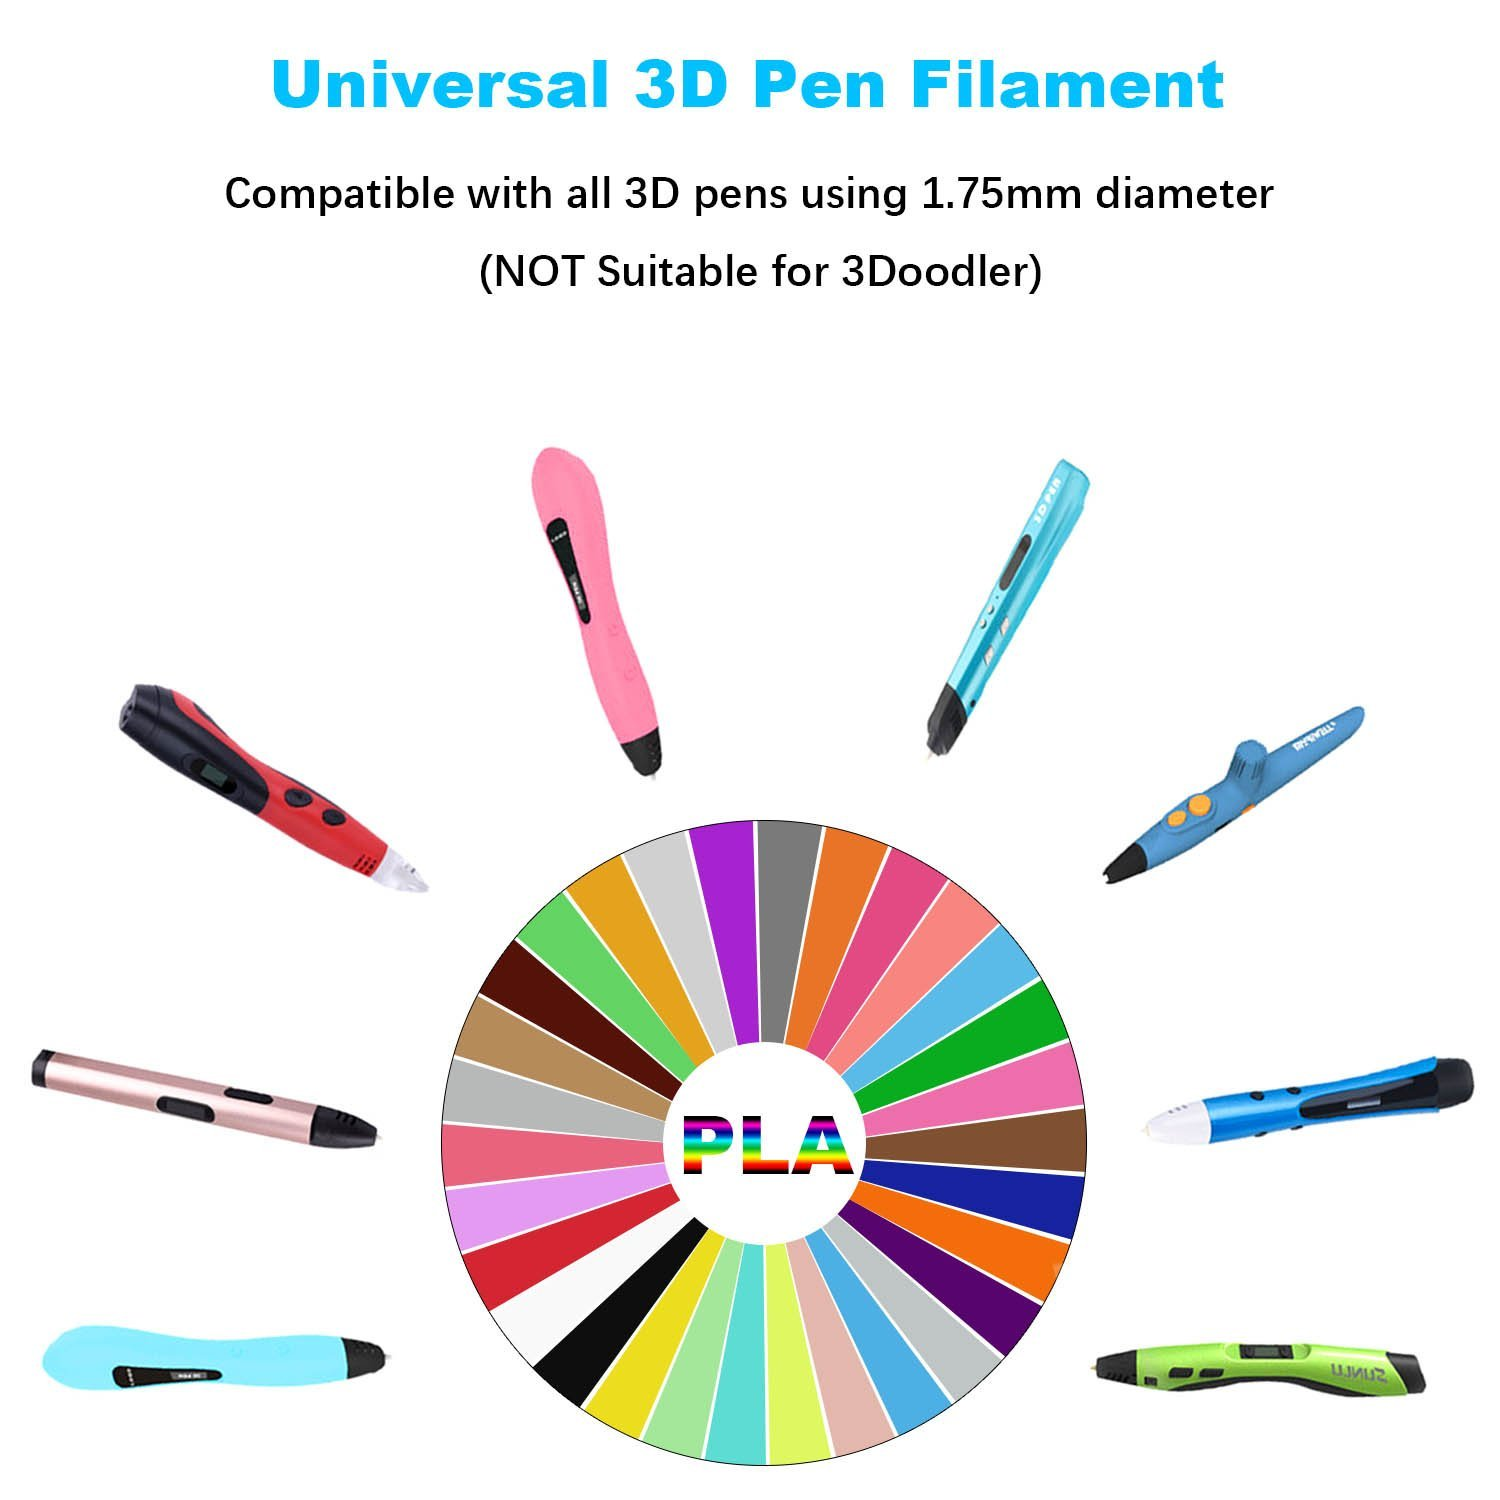 Pla 3d Pen Filament Refills 722 Linear Ft 1 75mm With 20 Paper Molds Coideal 22 Colors 10 Meters Per Color 3d Printing Pens Accessories Pack Kit For Kids Gift With Stencils Ebooks